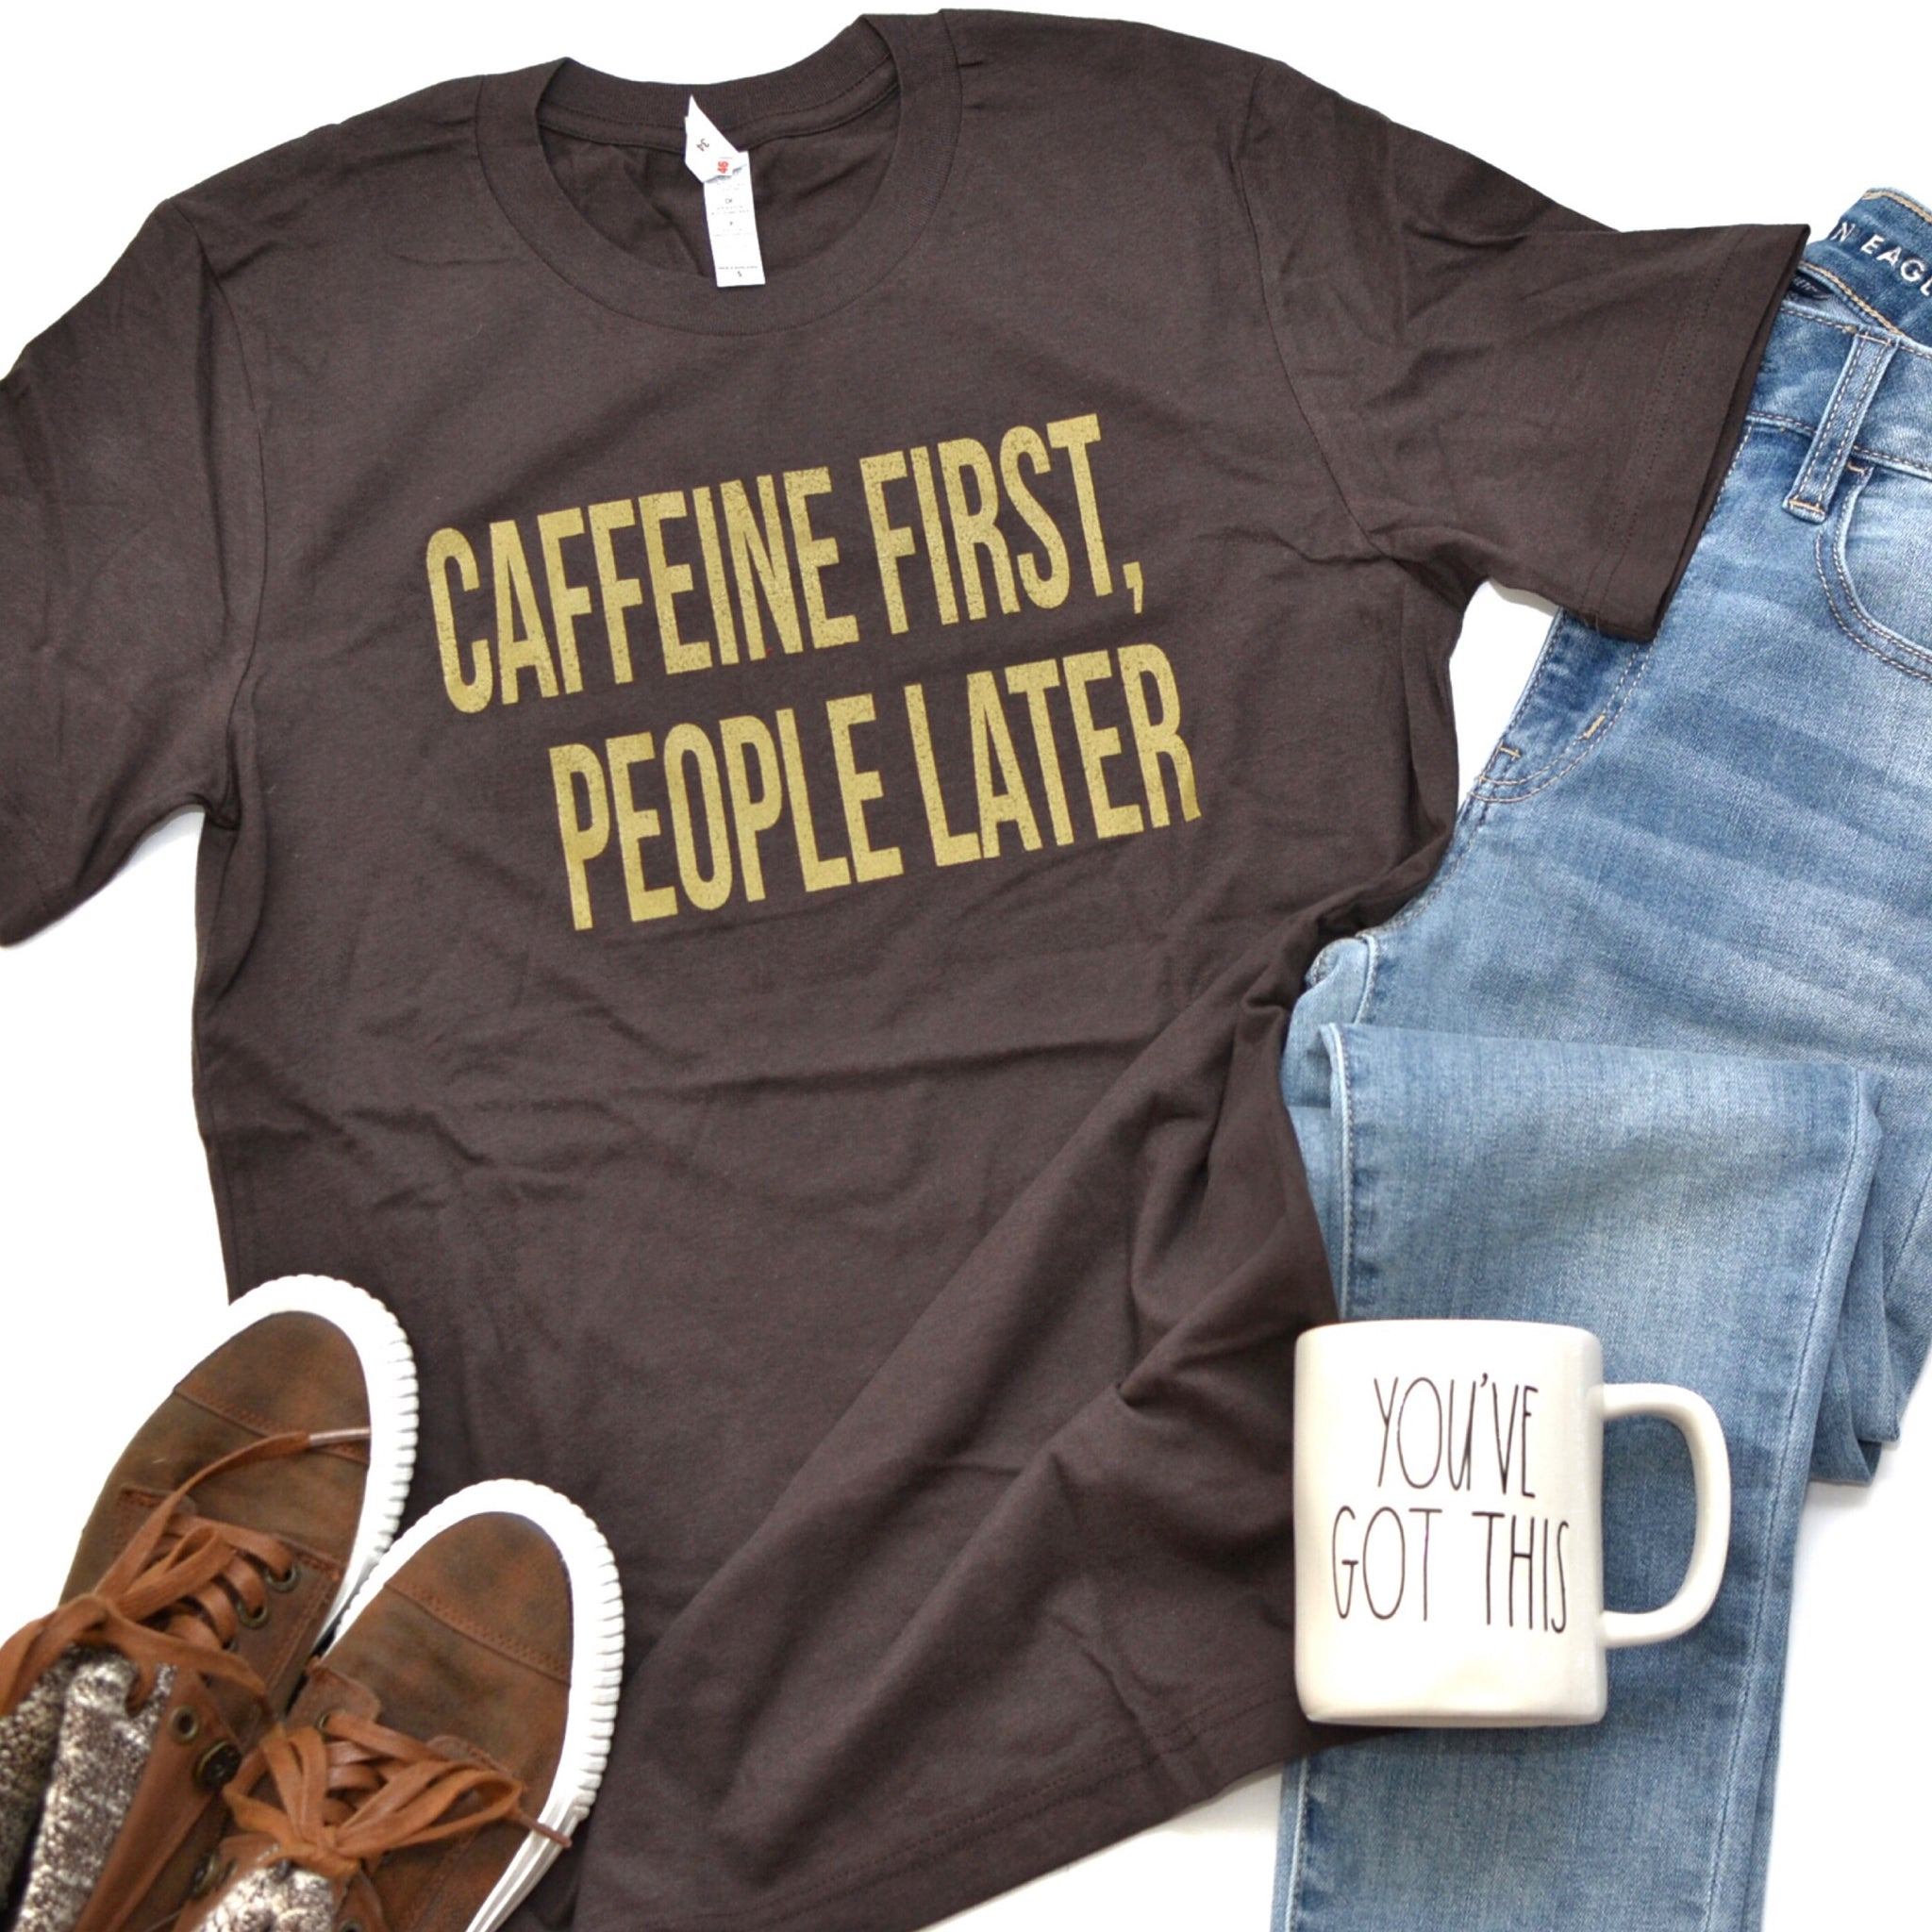 Caffeine First, People Later